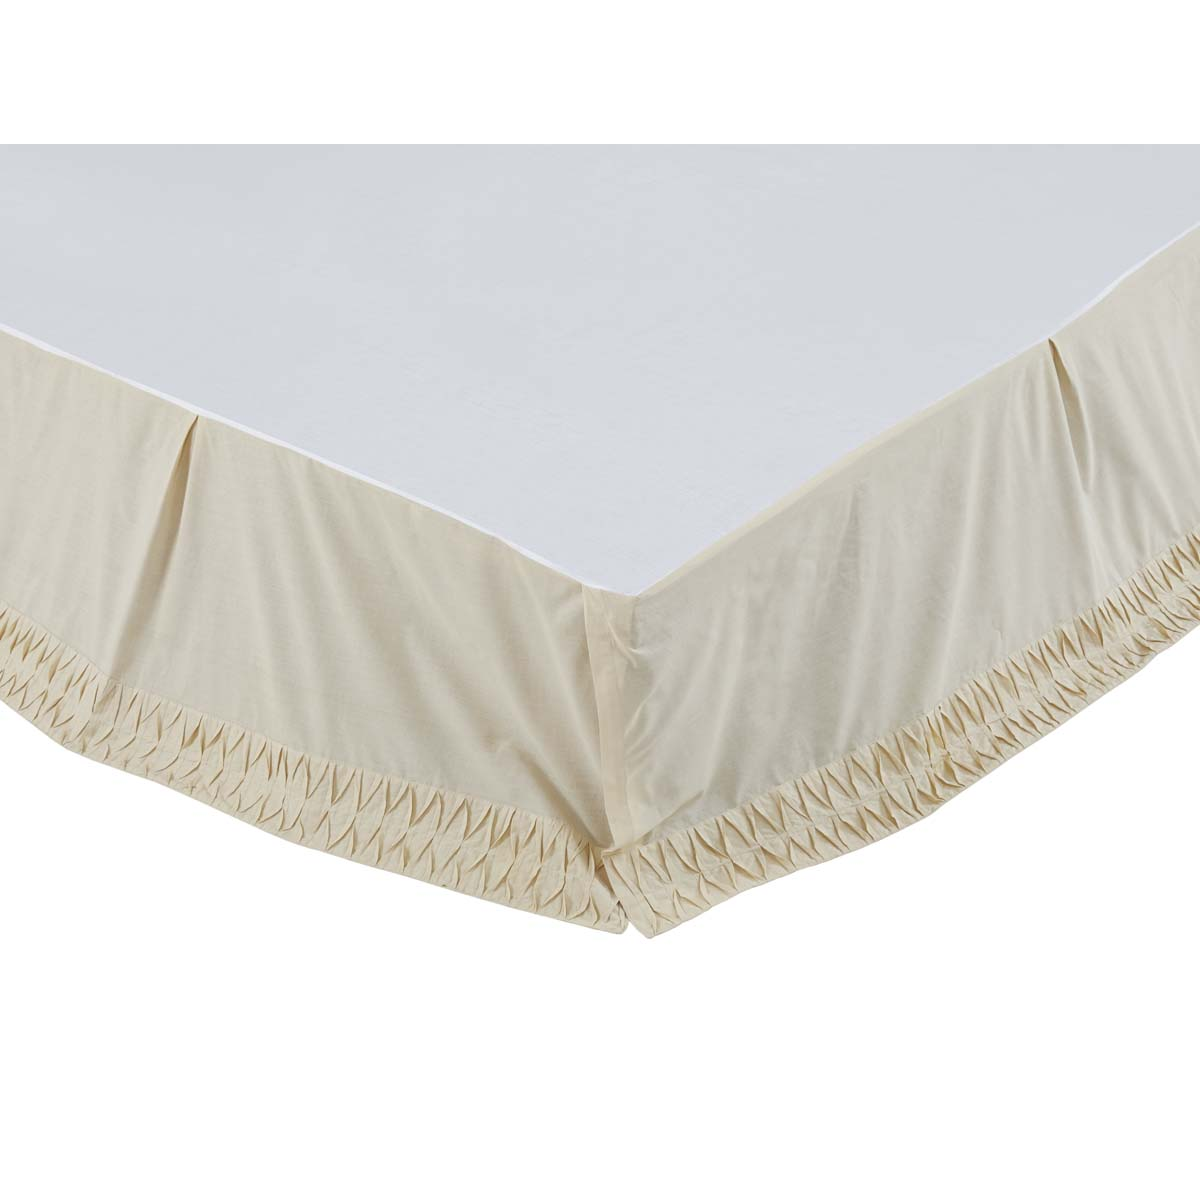 Adelia Creme King Bed Skirt 78x80x16